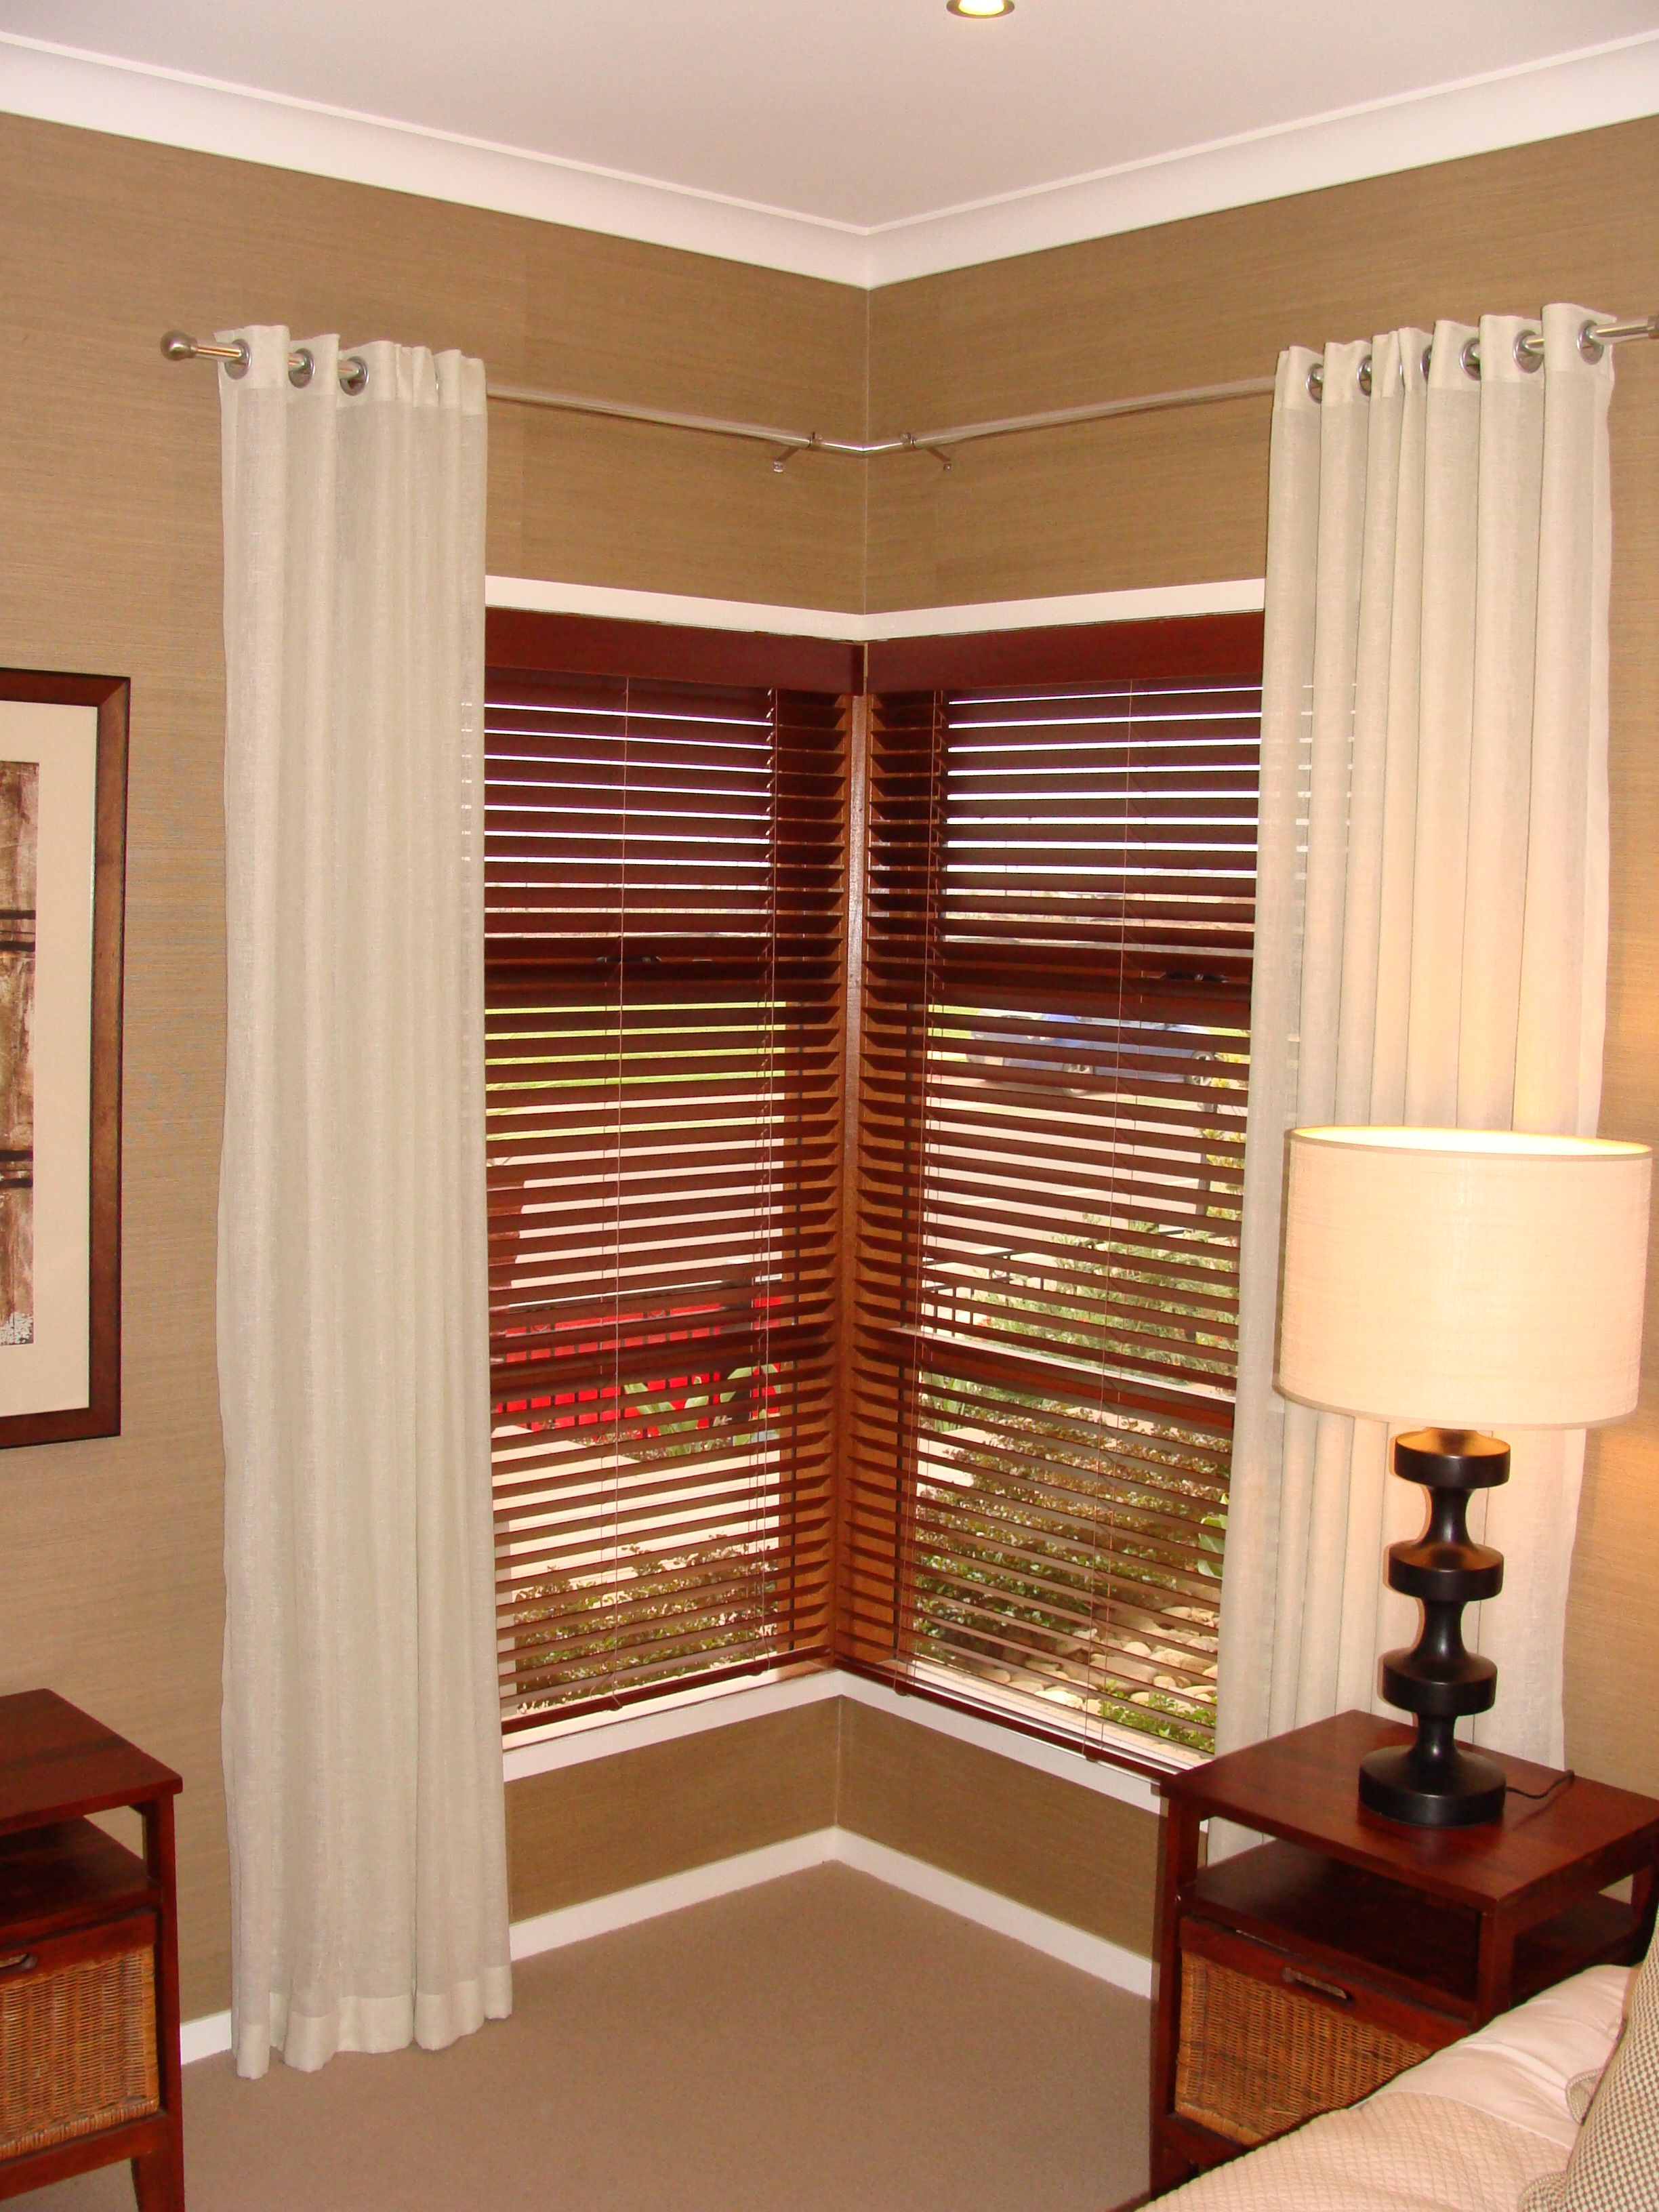 Wooden venetian blinds for corner window design and white fabric